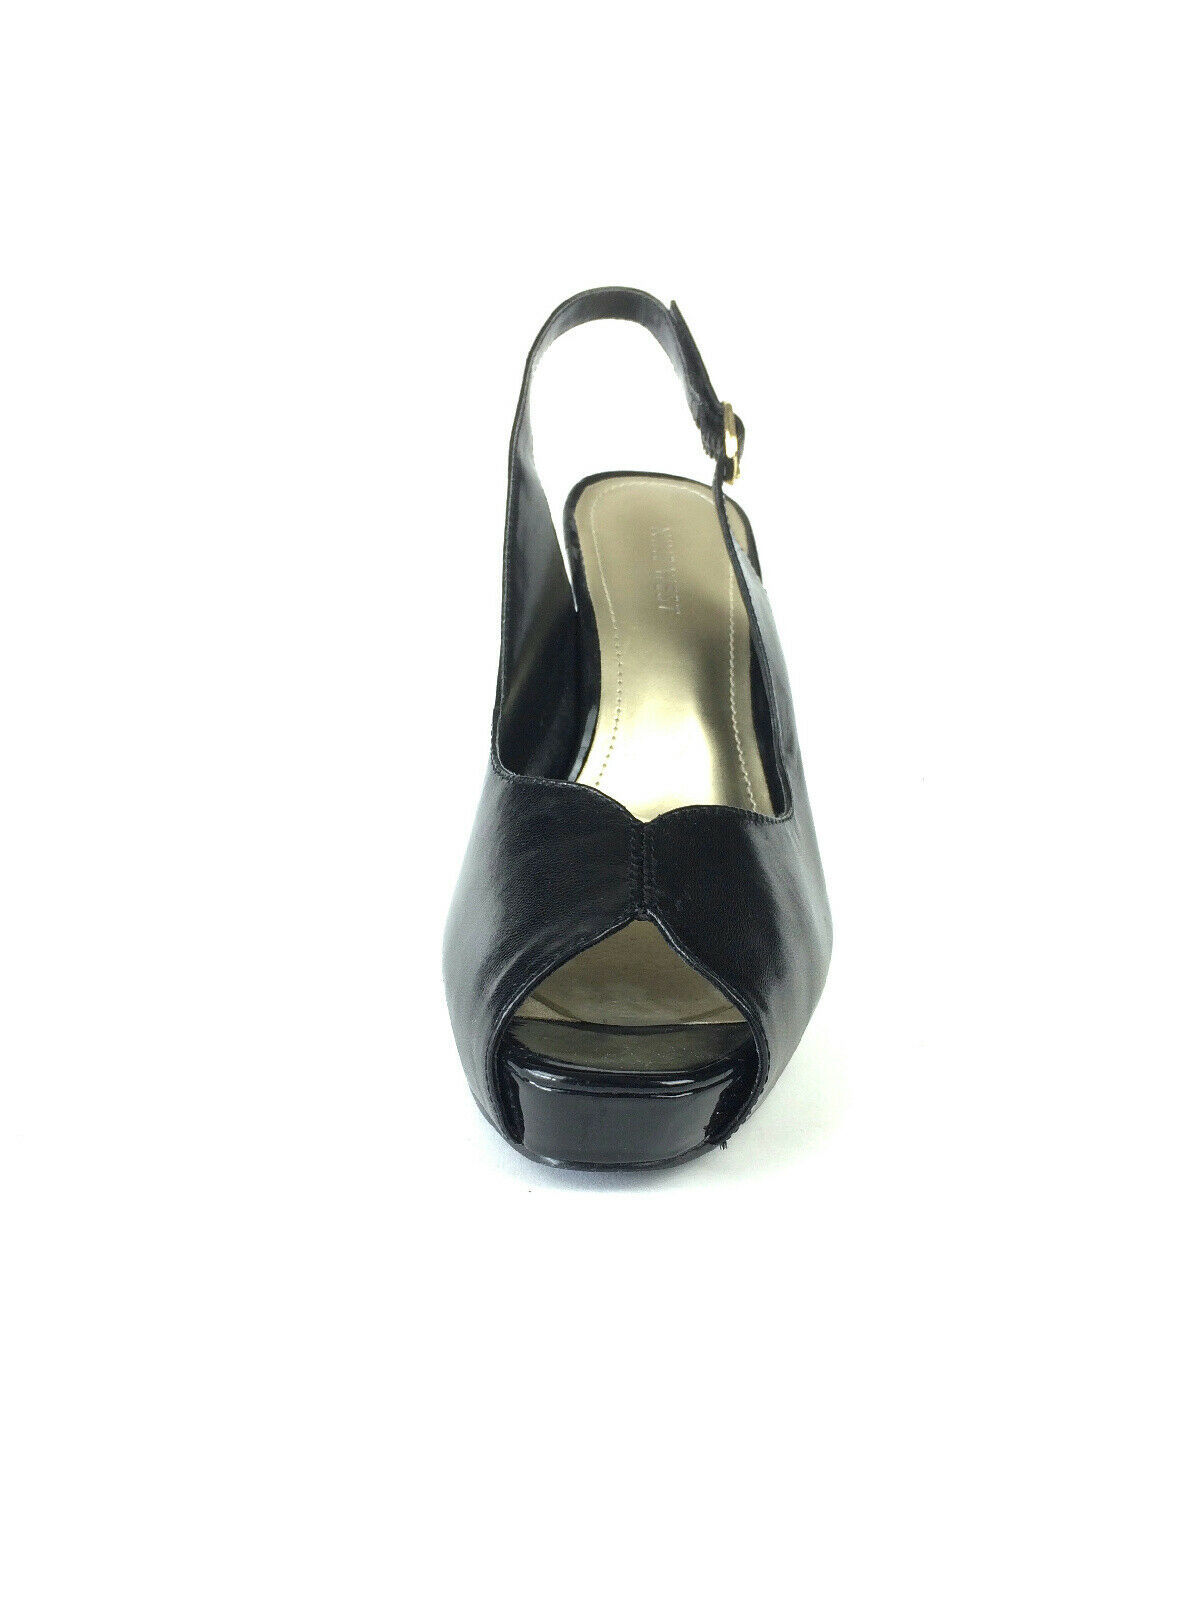 Sz 8 Nine West Black Leather Open Toe Slingback Heels w/Patent Leather Heel